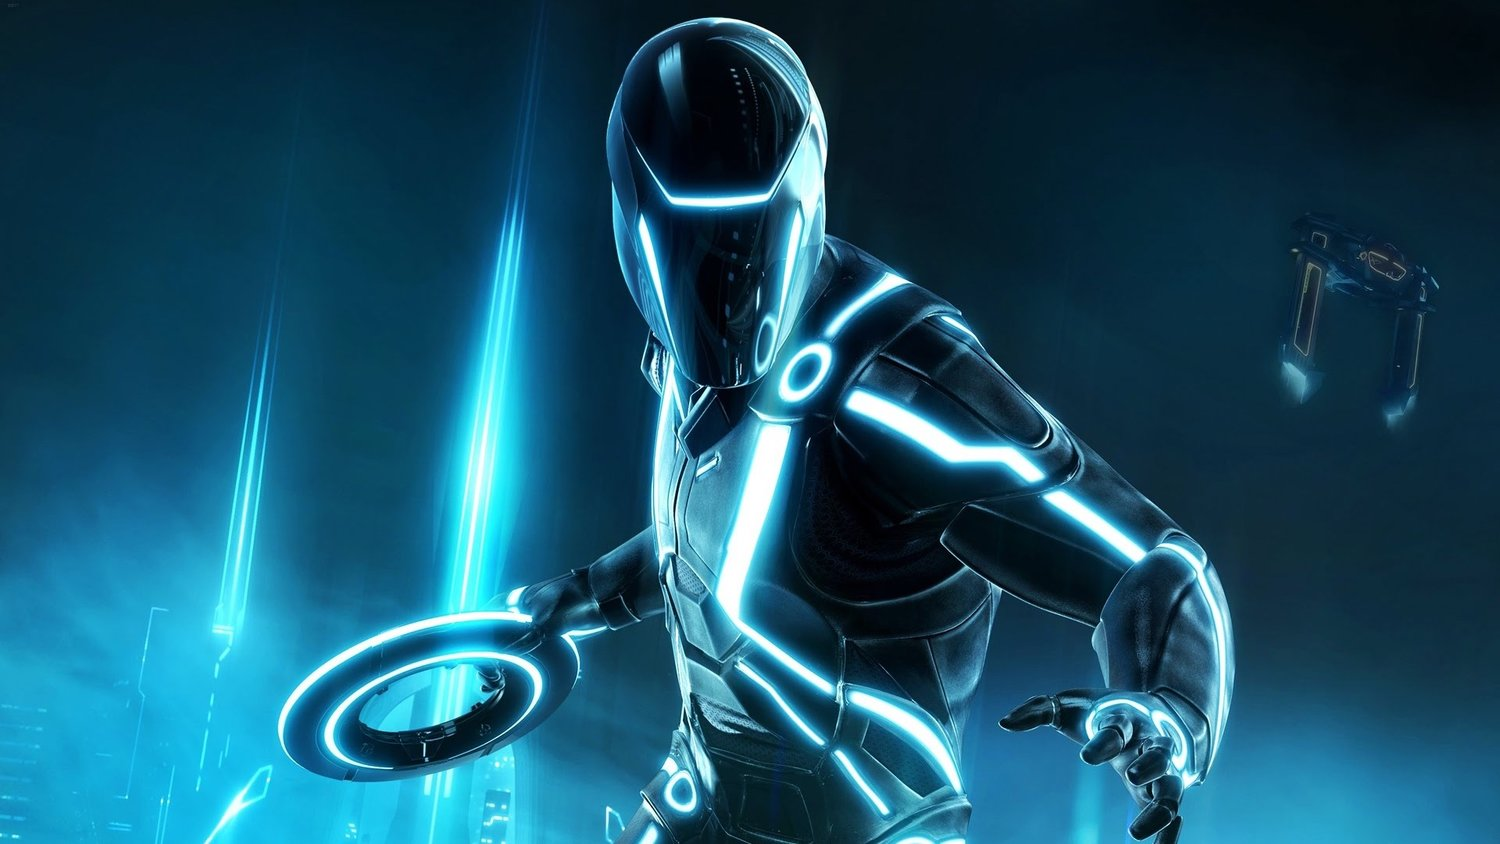 Tron Series: Disney+ Project That Never Gone Ahead